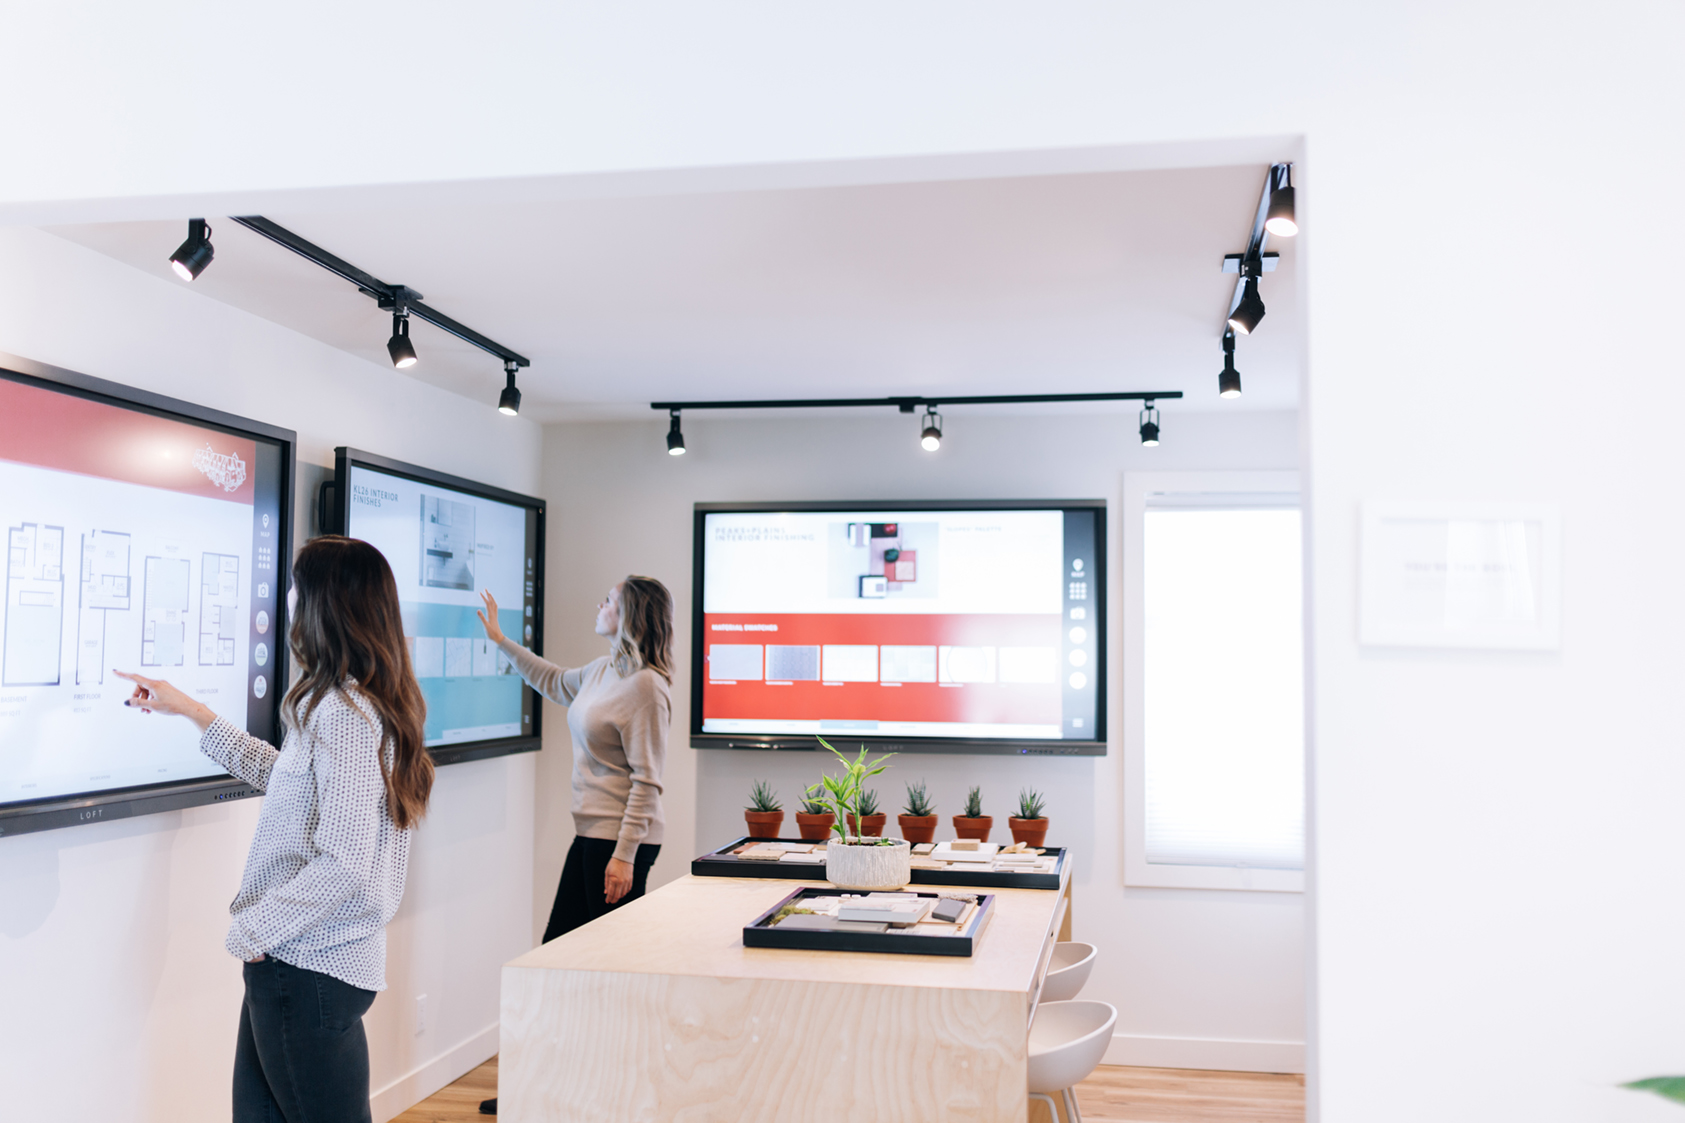 Enabling connectivity, collaboration and conversation. - We're here to help you take your meetings to another level. Our integrated software suite allows for wireless screen-sharing, interactive whiteboarding sessions and easy distribution of meeting notes and presentations.No matter the circumstance, LOFT has your business needs covered.